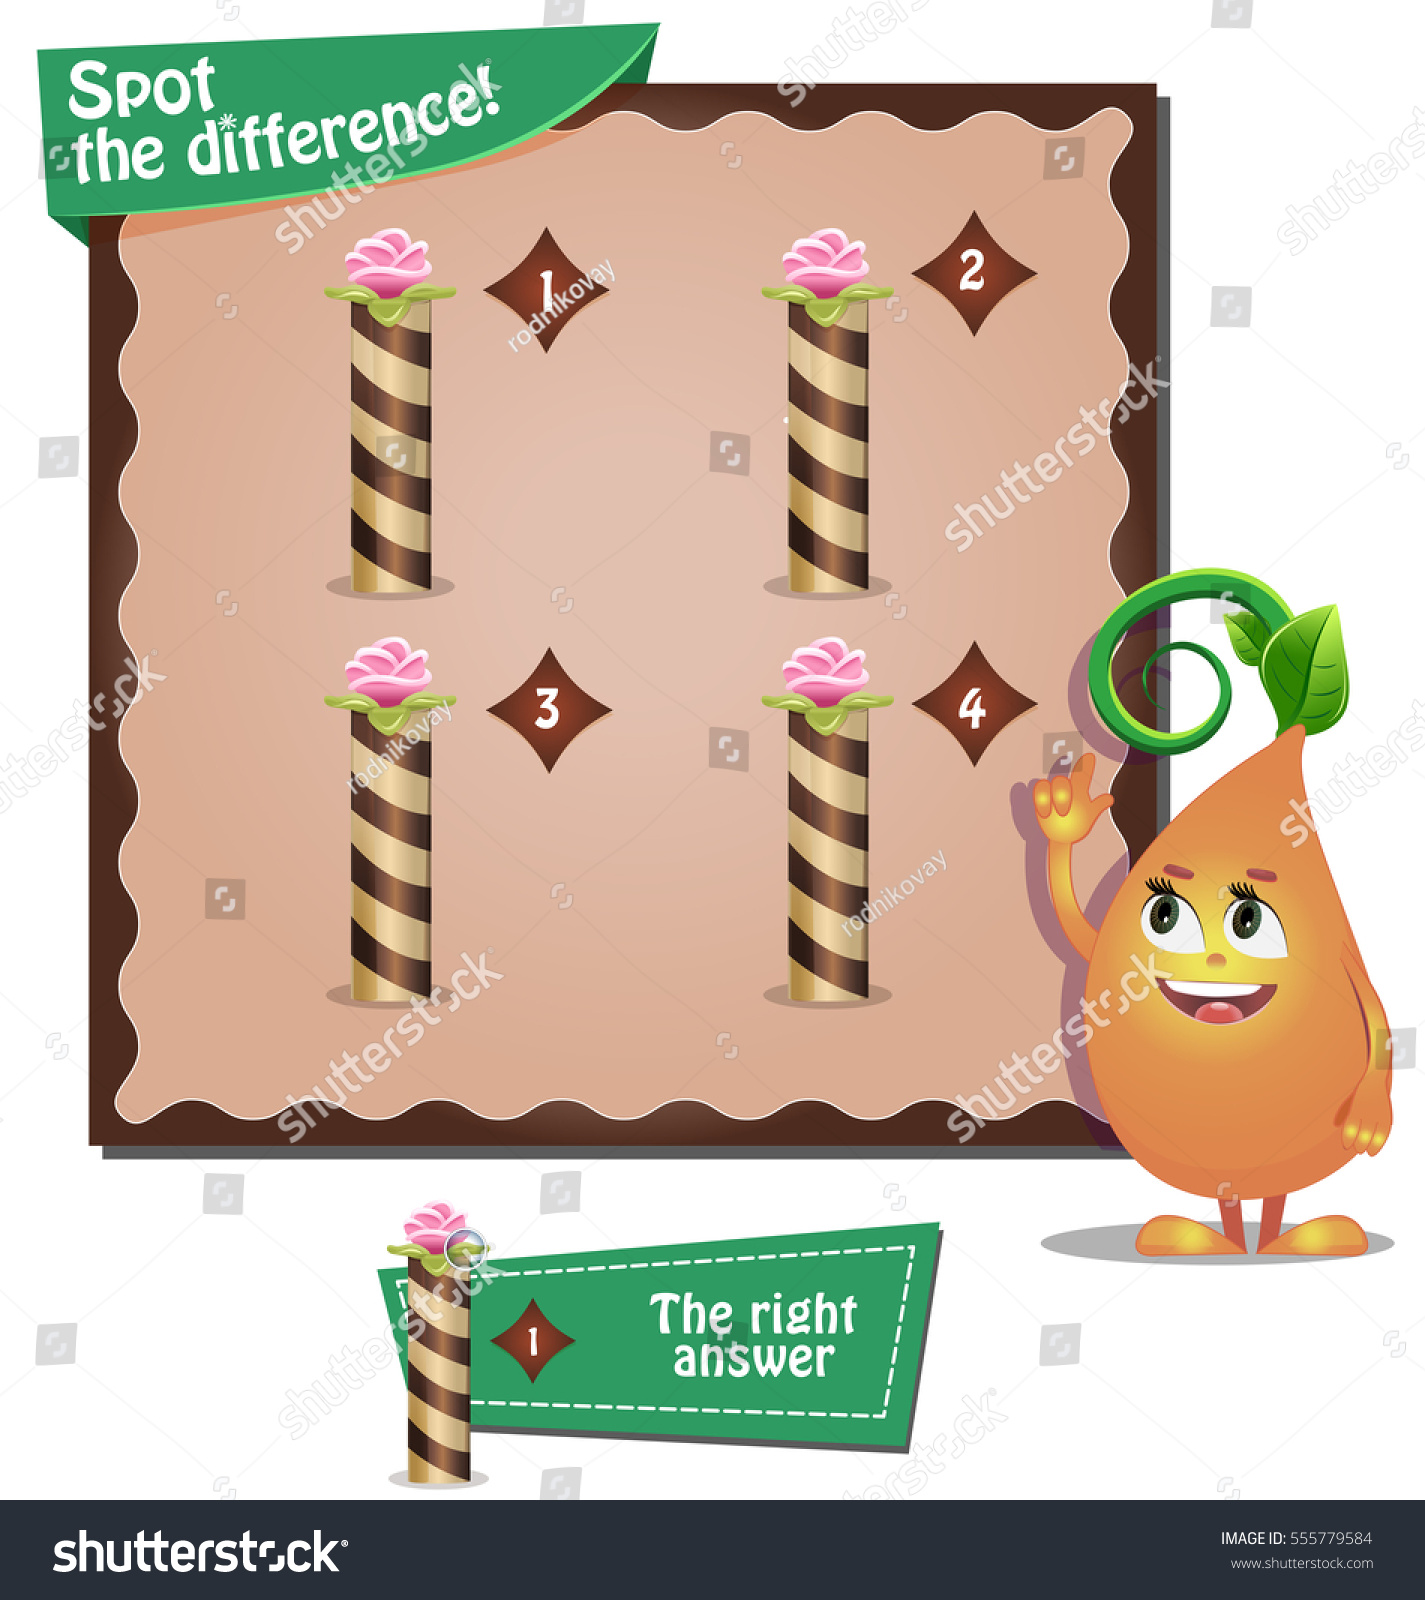 Visual Game Children Task Spot Difference Stock Vector